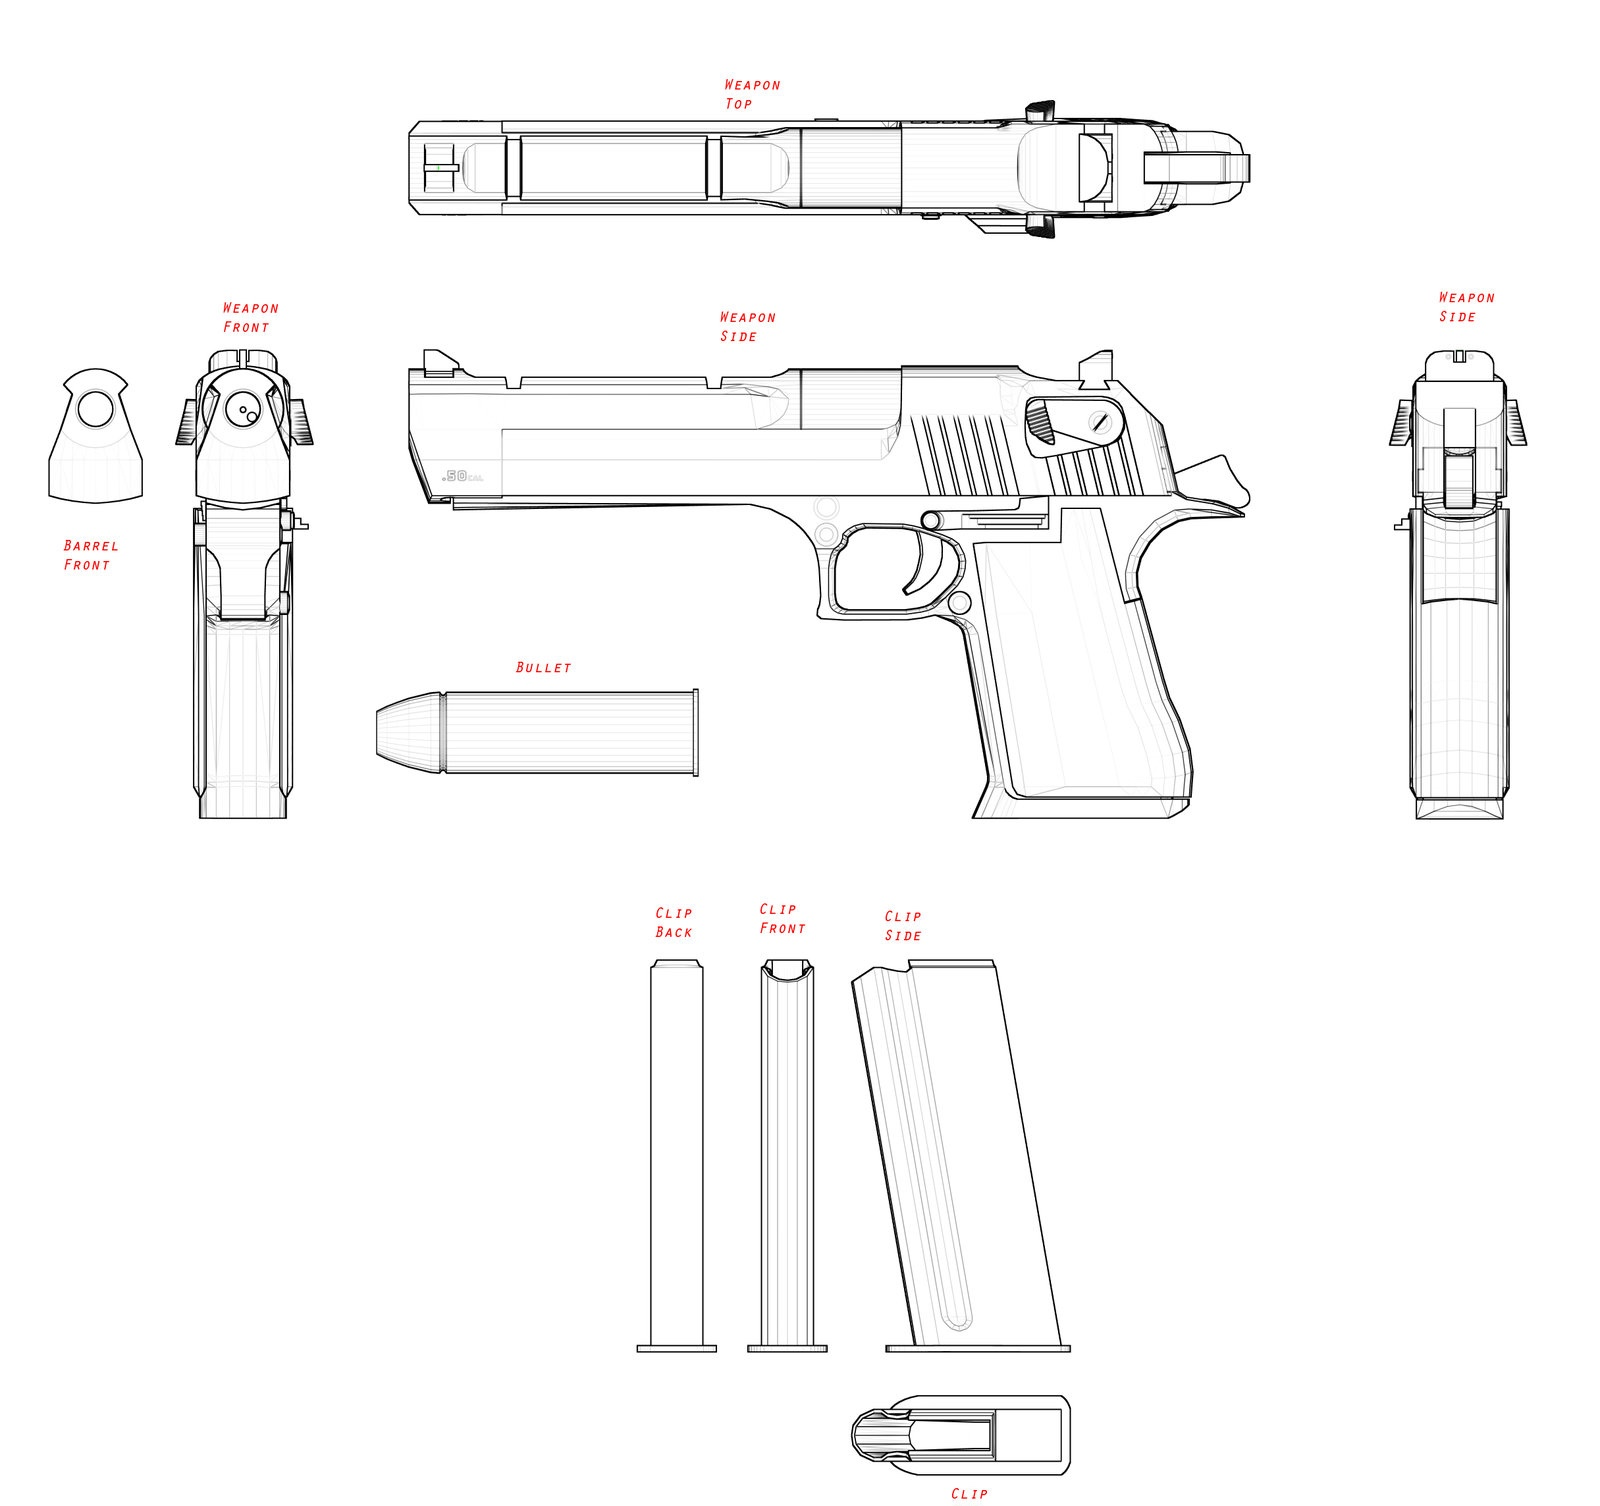 Imi desert eagle blueprint download free blueprint for for Free 3d blueprints